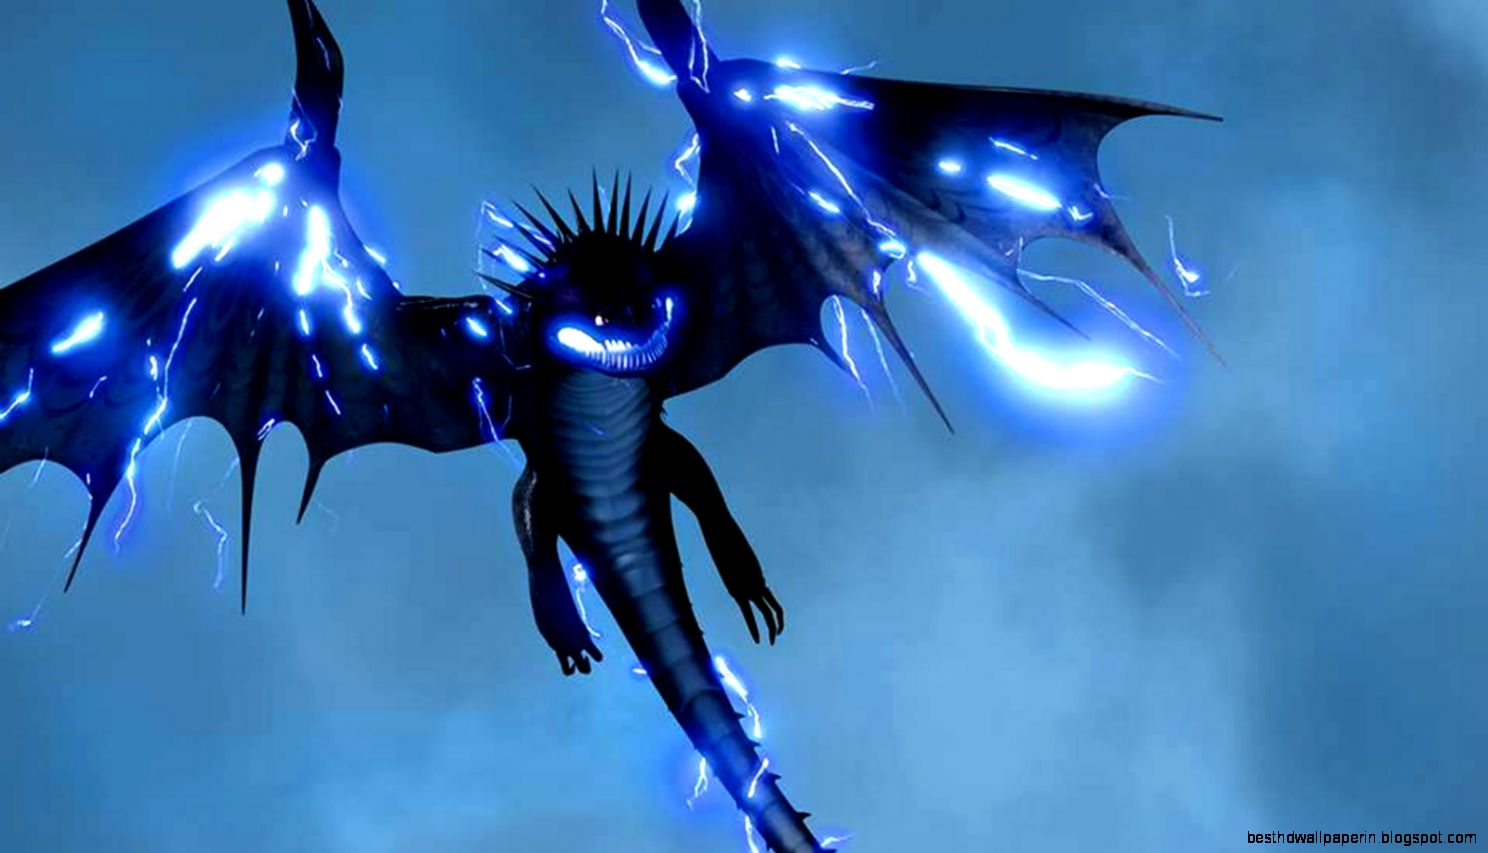 How to train your dragon 2 wallpaper toothless best hd - Toothless wallpaper ...